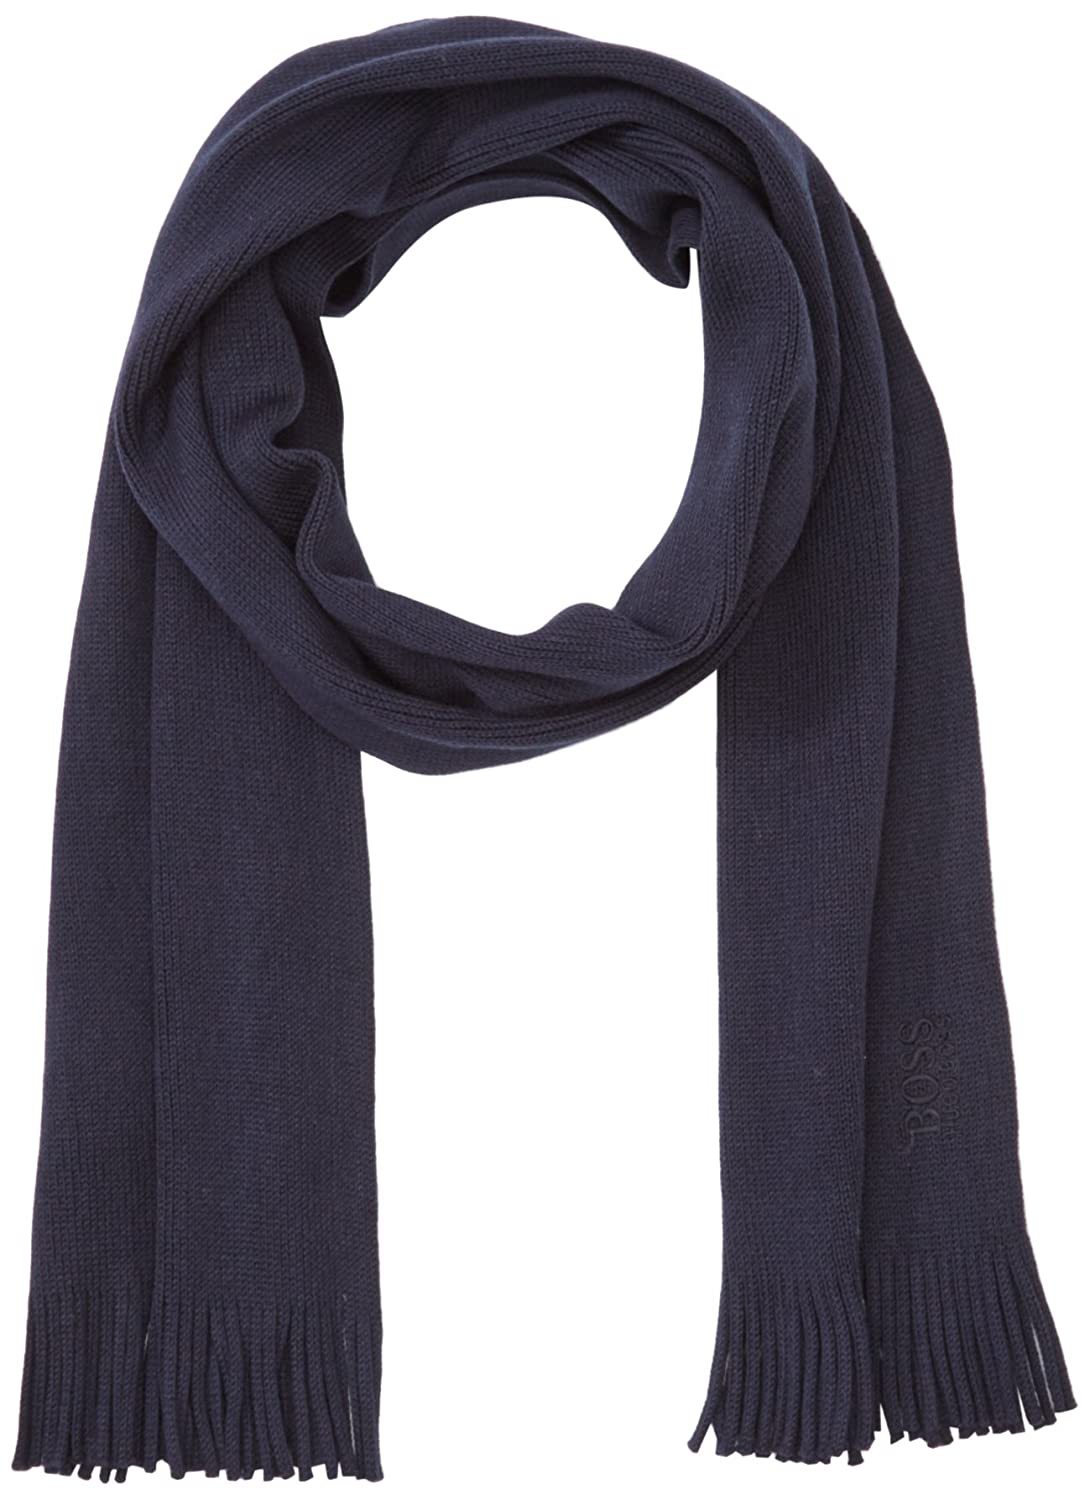 BOSS Men's Scarf Blue (Navy 410) One Size BOSS Green 50322466